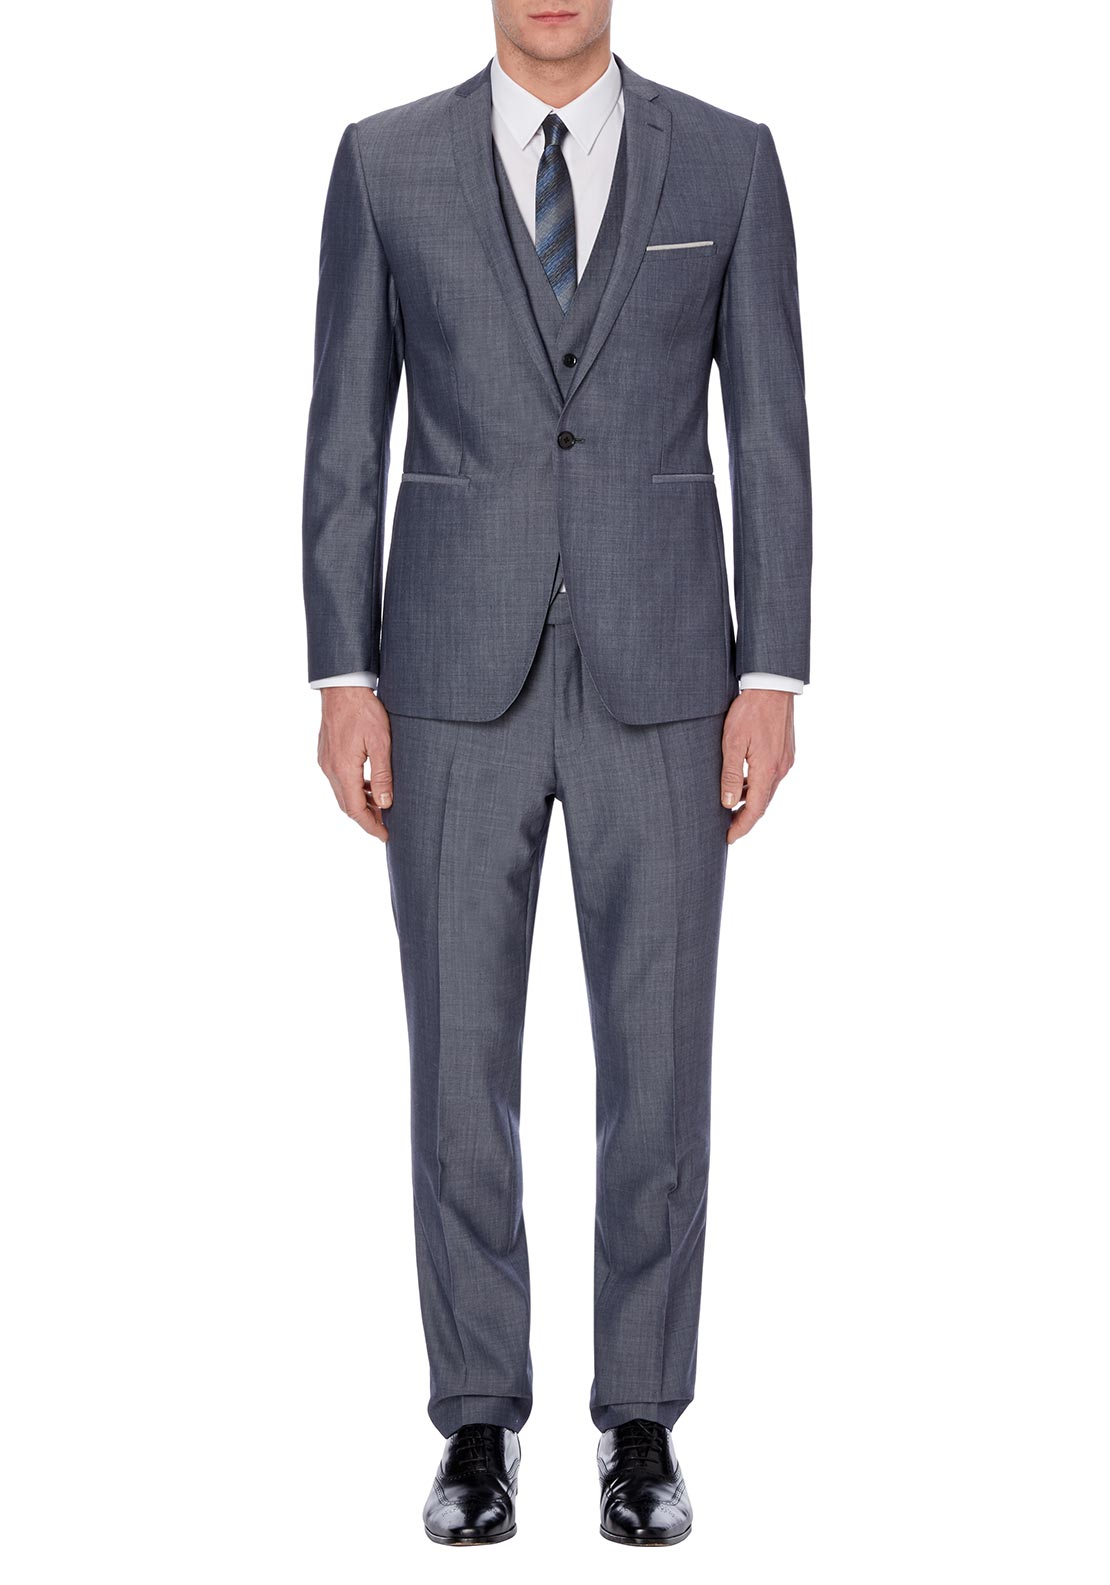 Remus Uomo Mens 2 Button 3 Piece Suit, Light Grey